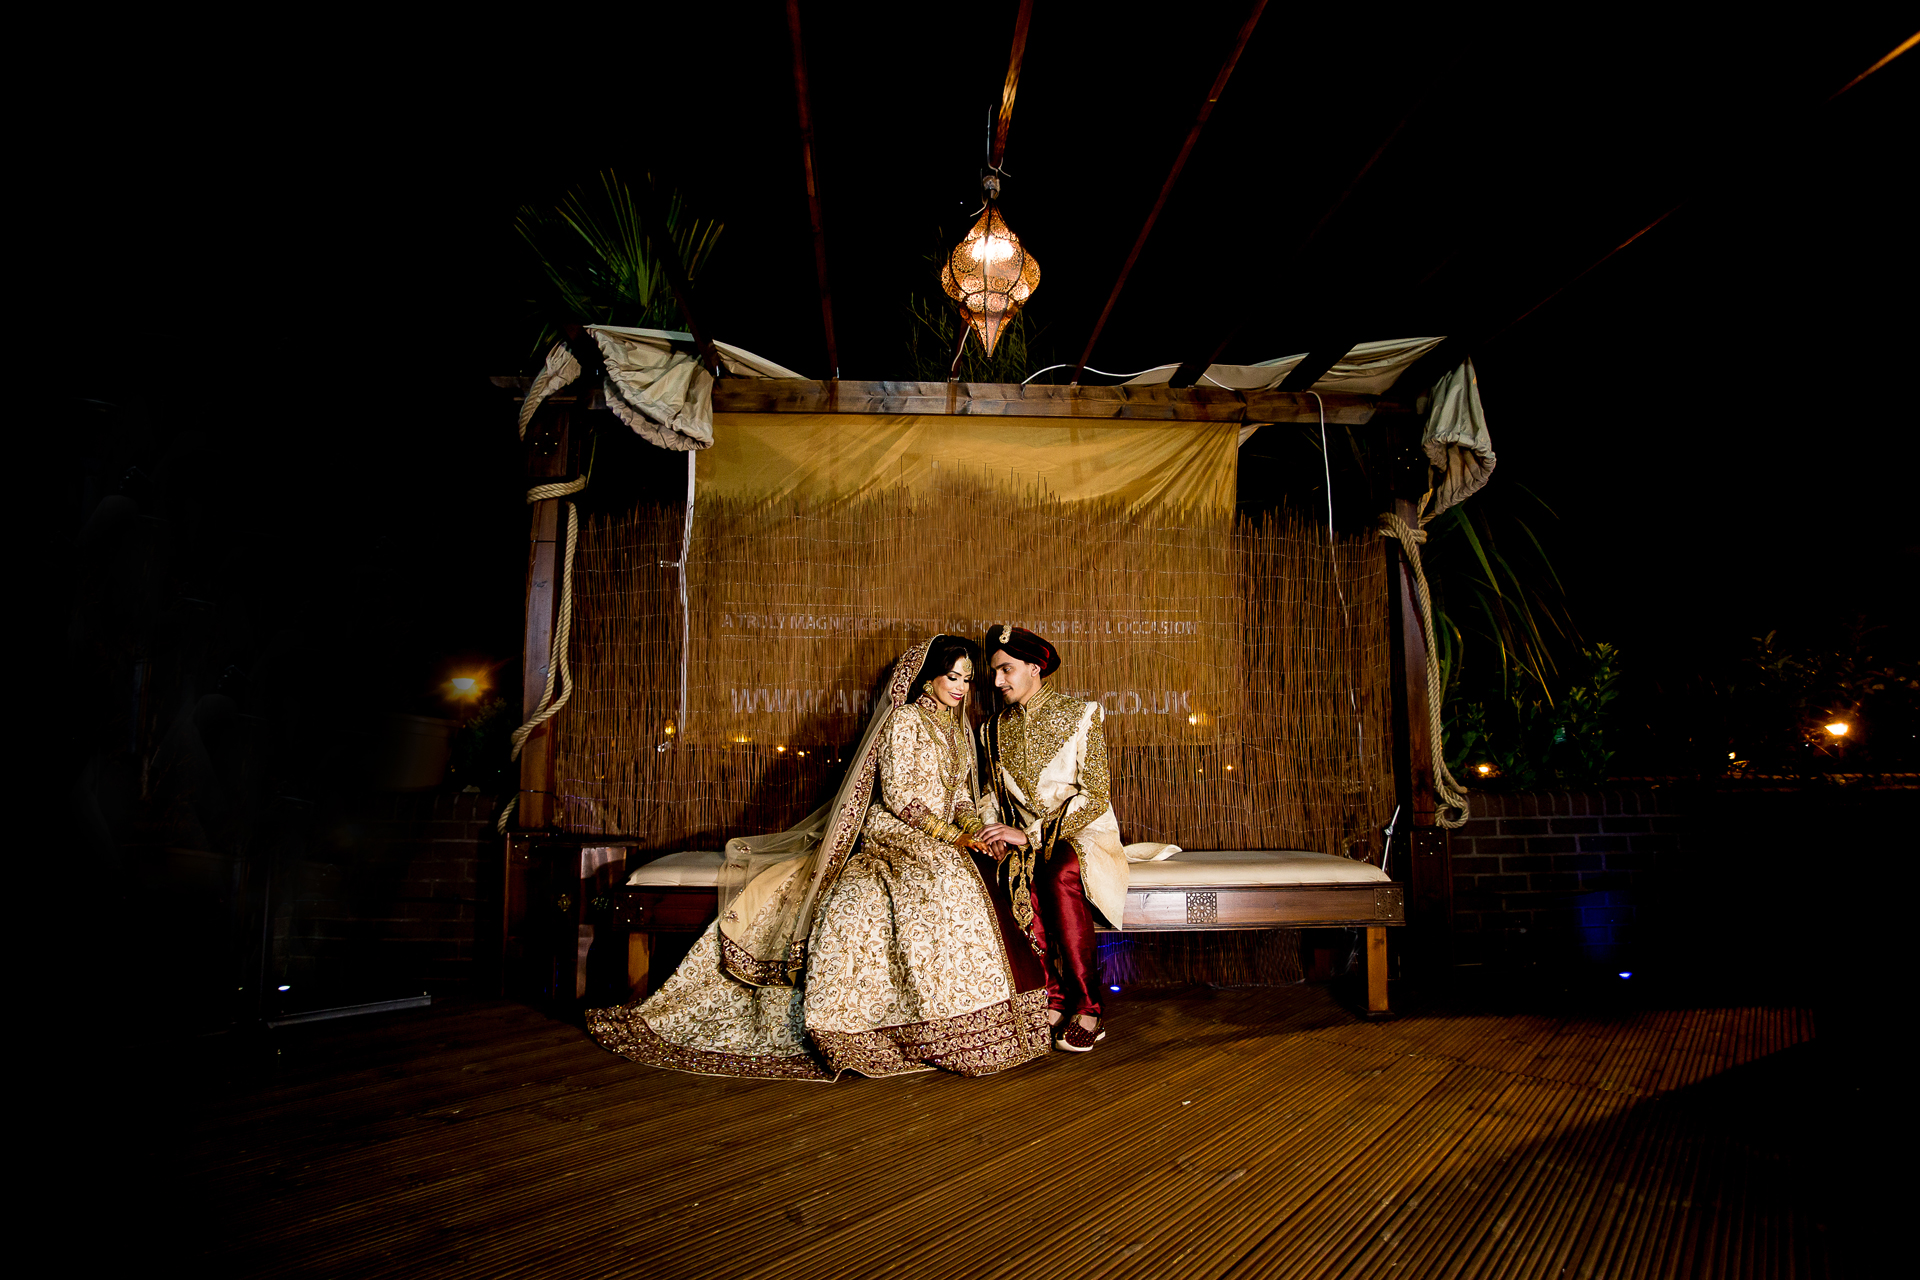 asian wedding photography | asian wedding filming